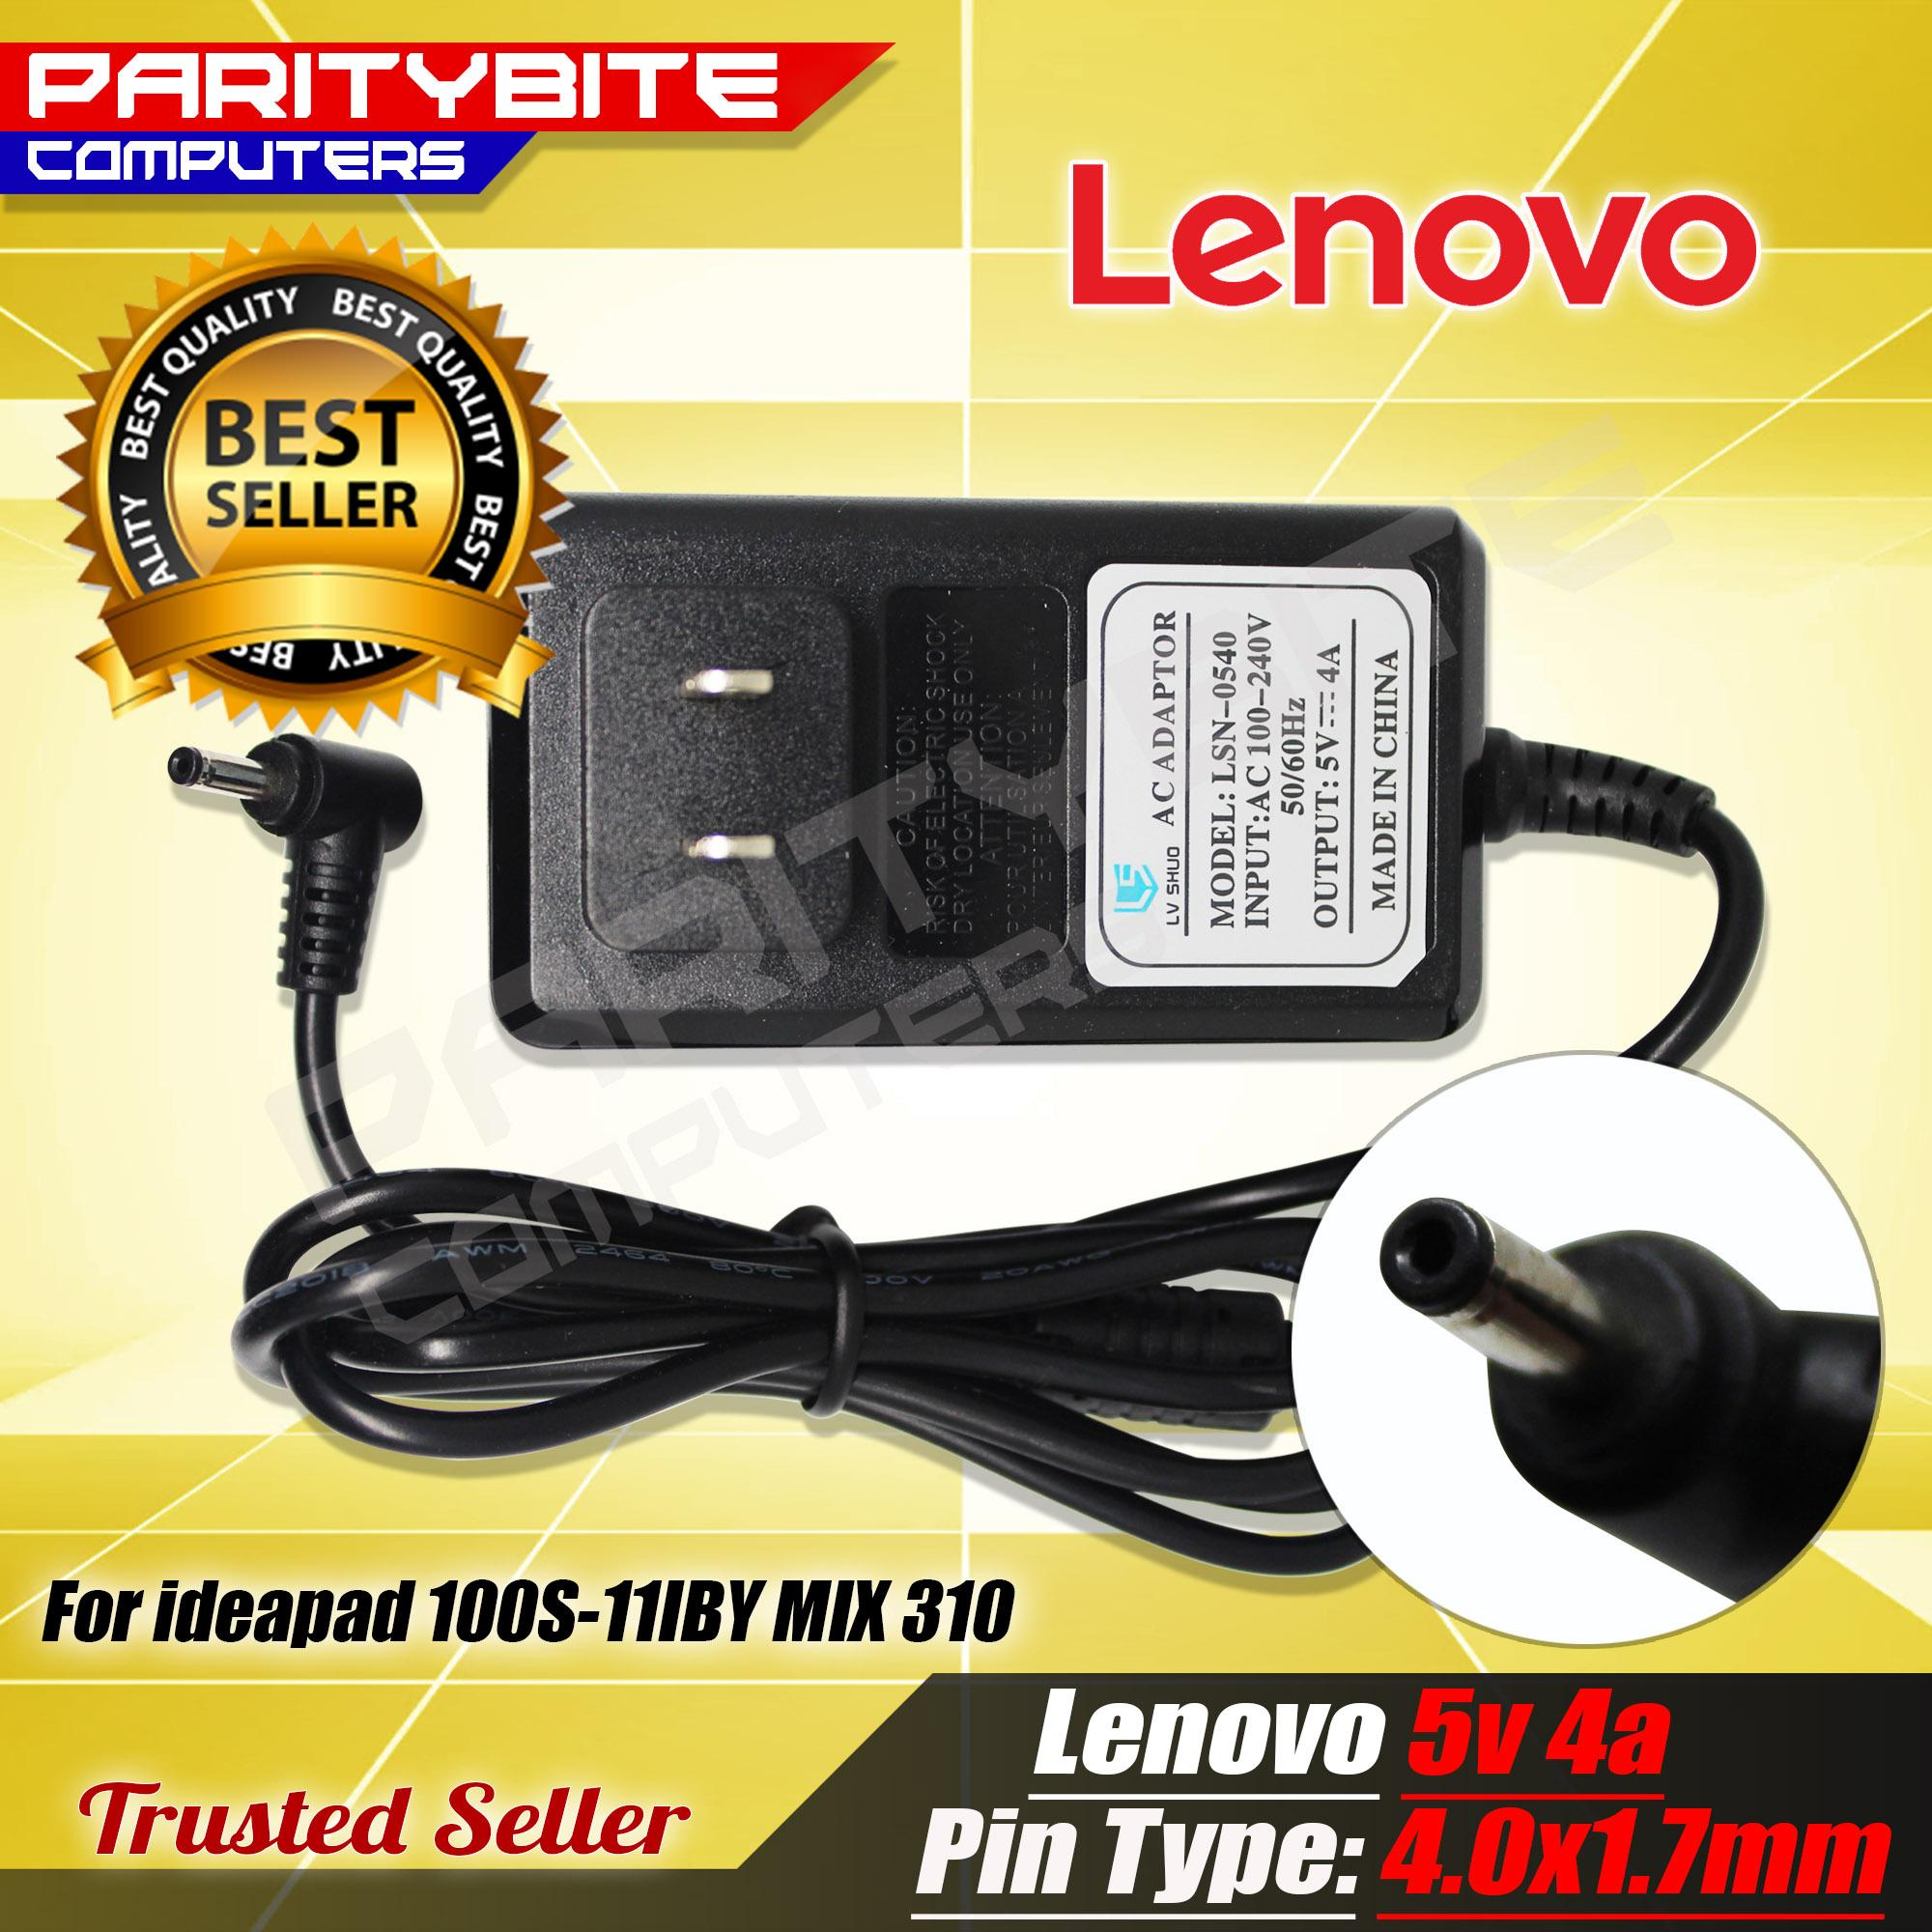 LENOVO Laptop Charger 5V 4A 4 0mmx1 7mm 20W for ideapad 100S-11IBY MIX 310